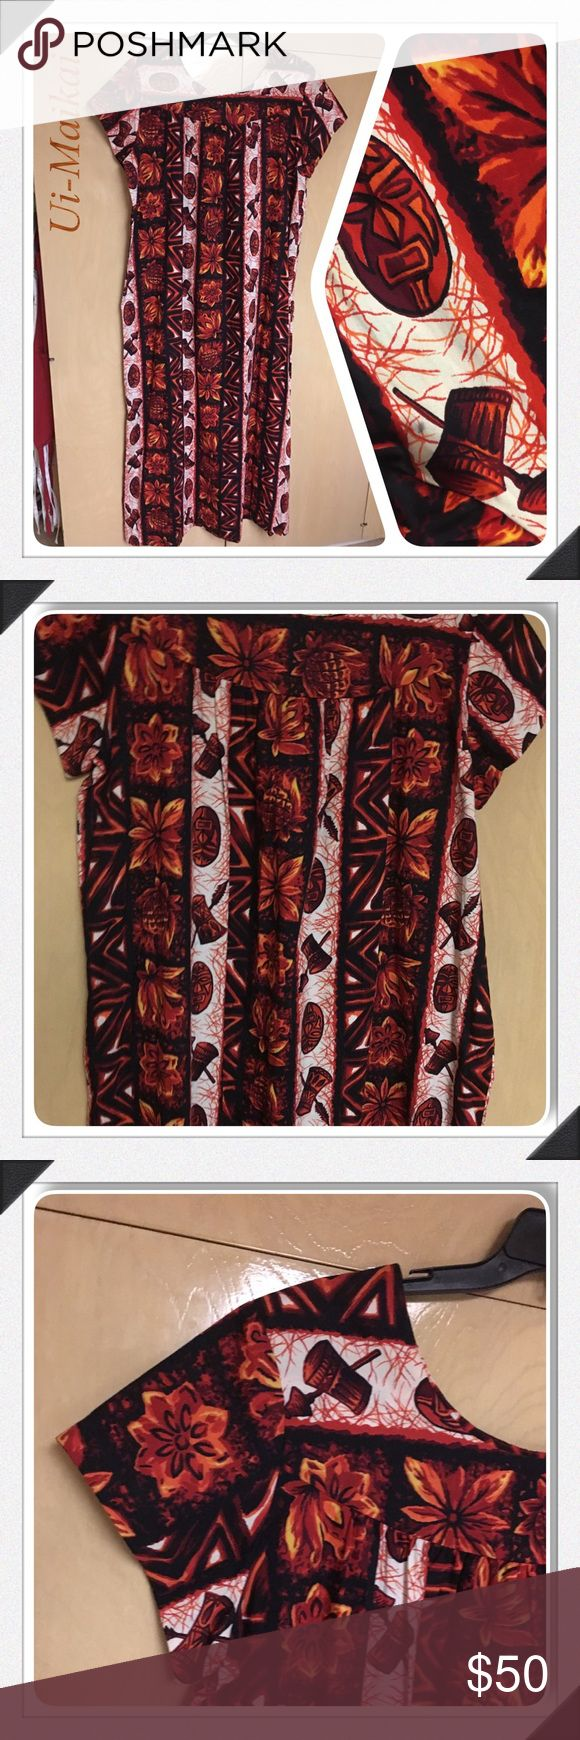 """60s Ui Maikai Brown Tiki Hawaiian Themed Dress XL Vintage Ui Maikai Short Sleeve Polynesian Full Length Tiki Luau Hawaiian Sun Dress Fab print featuring tiki masks, torches, pineapples, flowers and more!  The colors are shades of orange, red, brown cream and black - very vibrant and bright.  Pull over styling 100% Cotton  Size 18 (Vintage) / Extra Large  Measurements (approx./laying flat): Bust - 23 1/2"""" Waist - 29"""" Hips - 31"""" Length (top of shoulder to hemline) - 40"""" Excellent vintage…"""